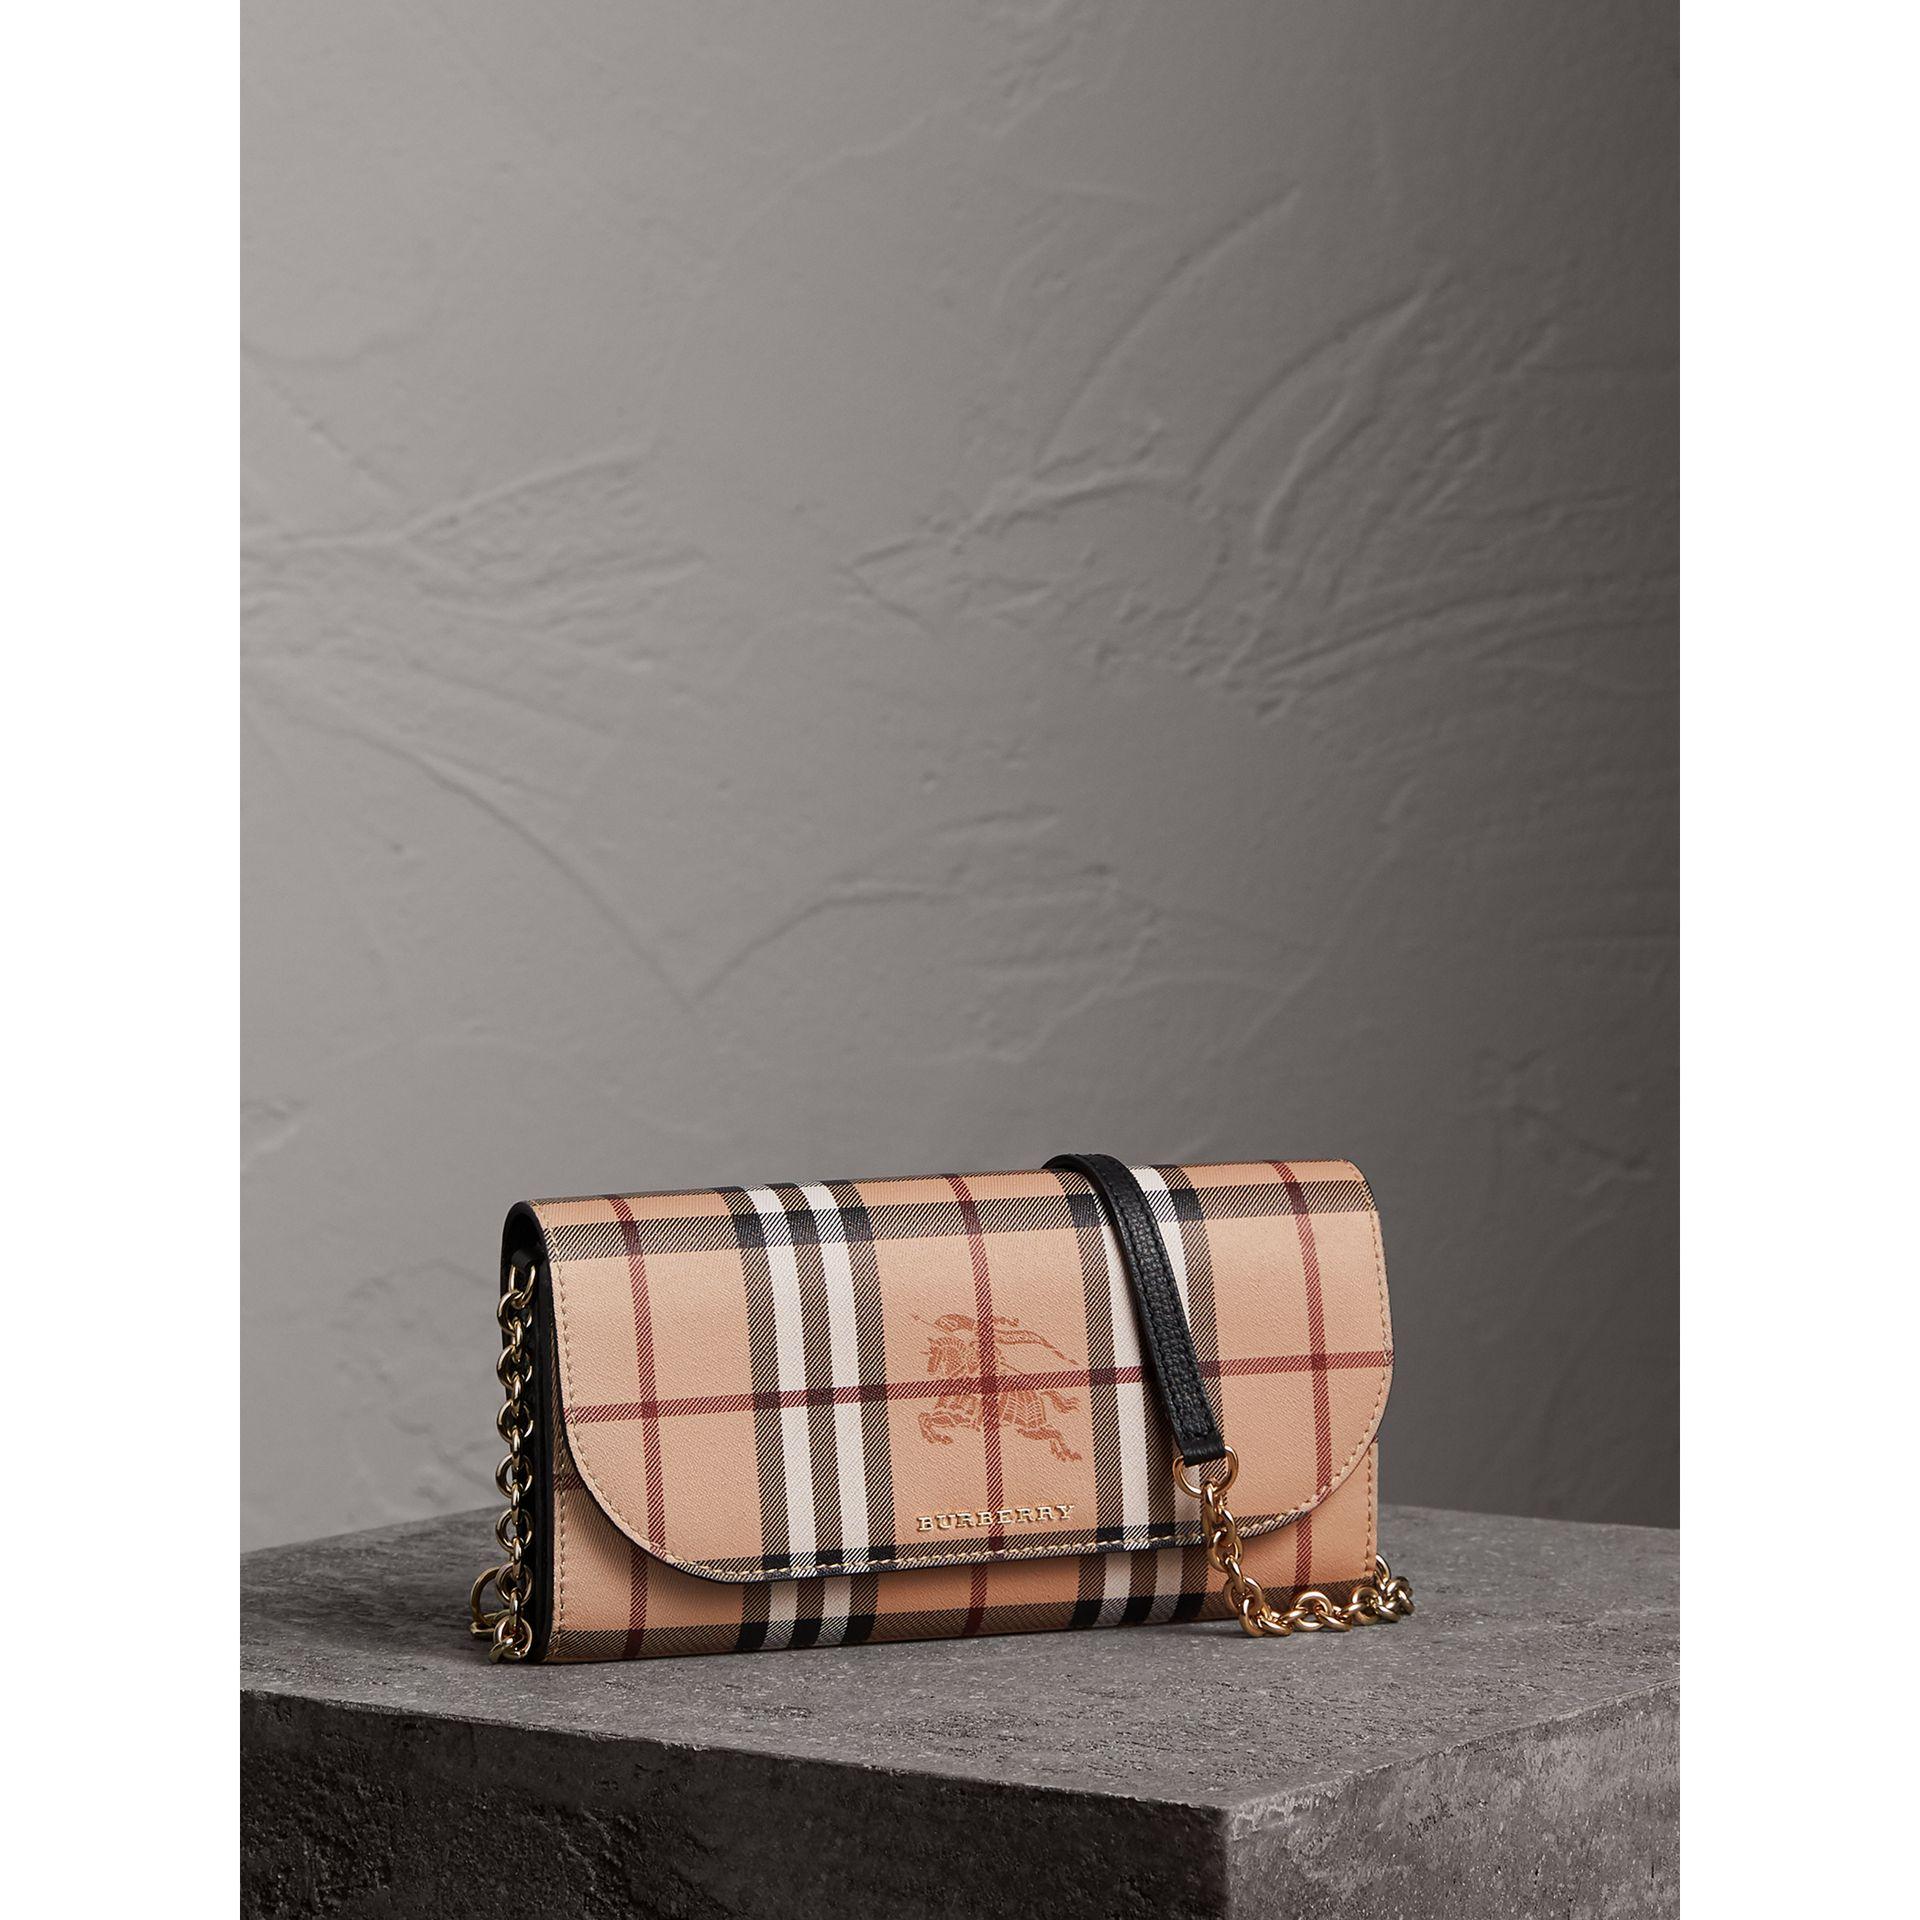 Leather Trim Haymarket Check Wallet with Chain in Black - Women | Burberry Hong Kong - gallery image 1